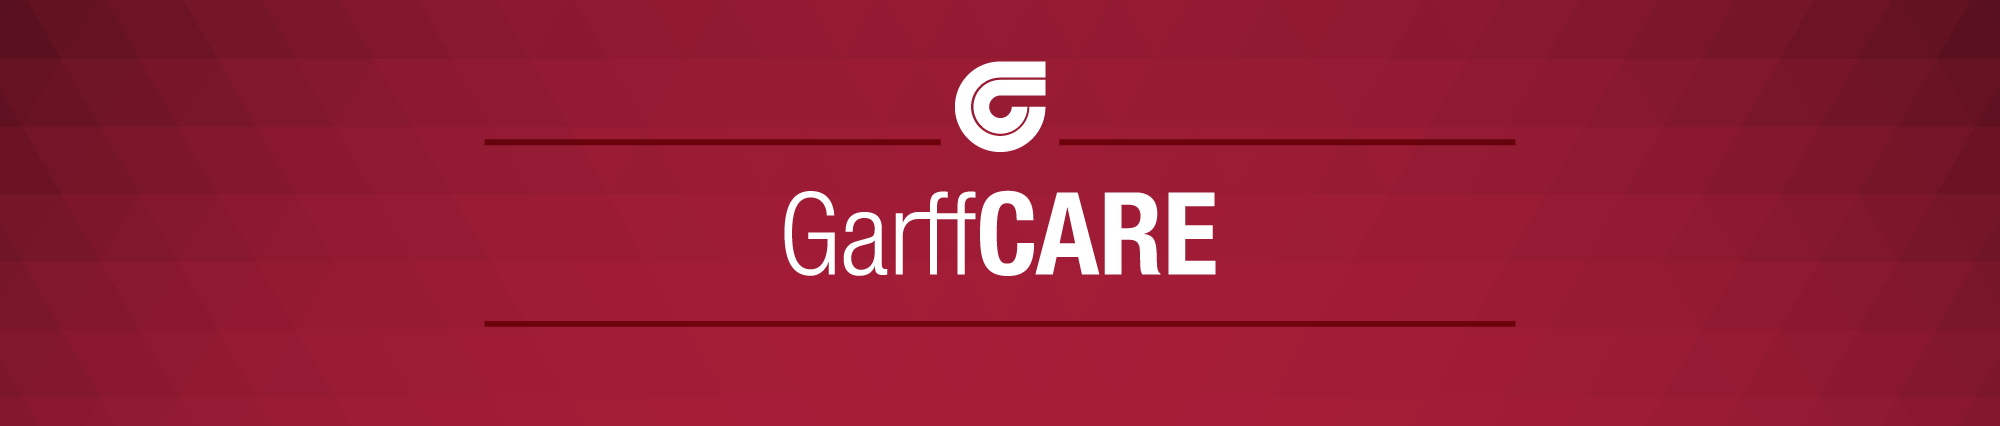 garffcare ken garff nissan salt lake city ut. Black Bedroom Furniture Sets. Home Design Ideas